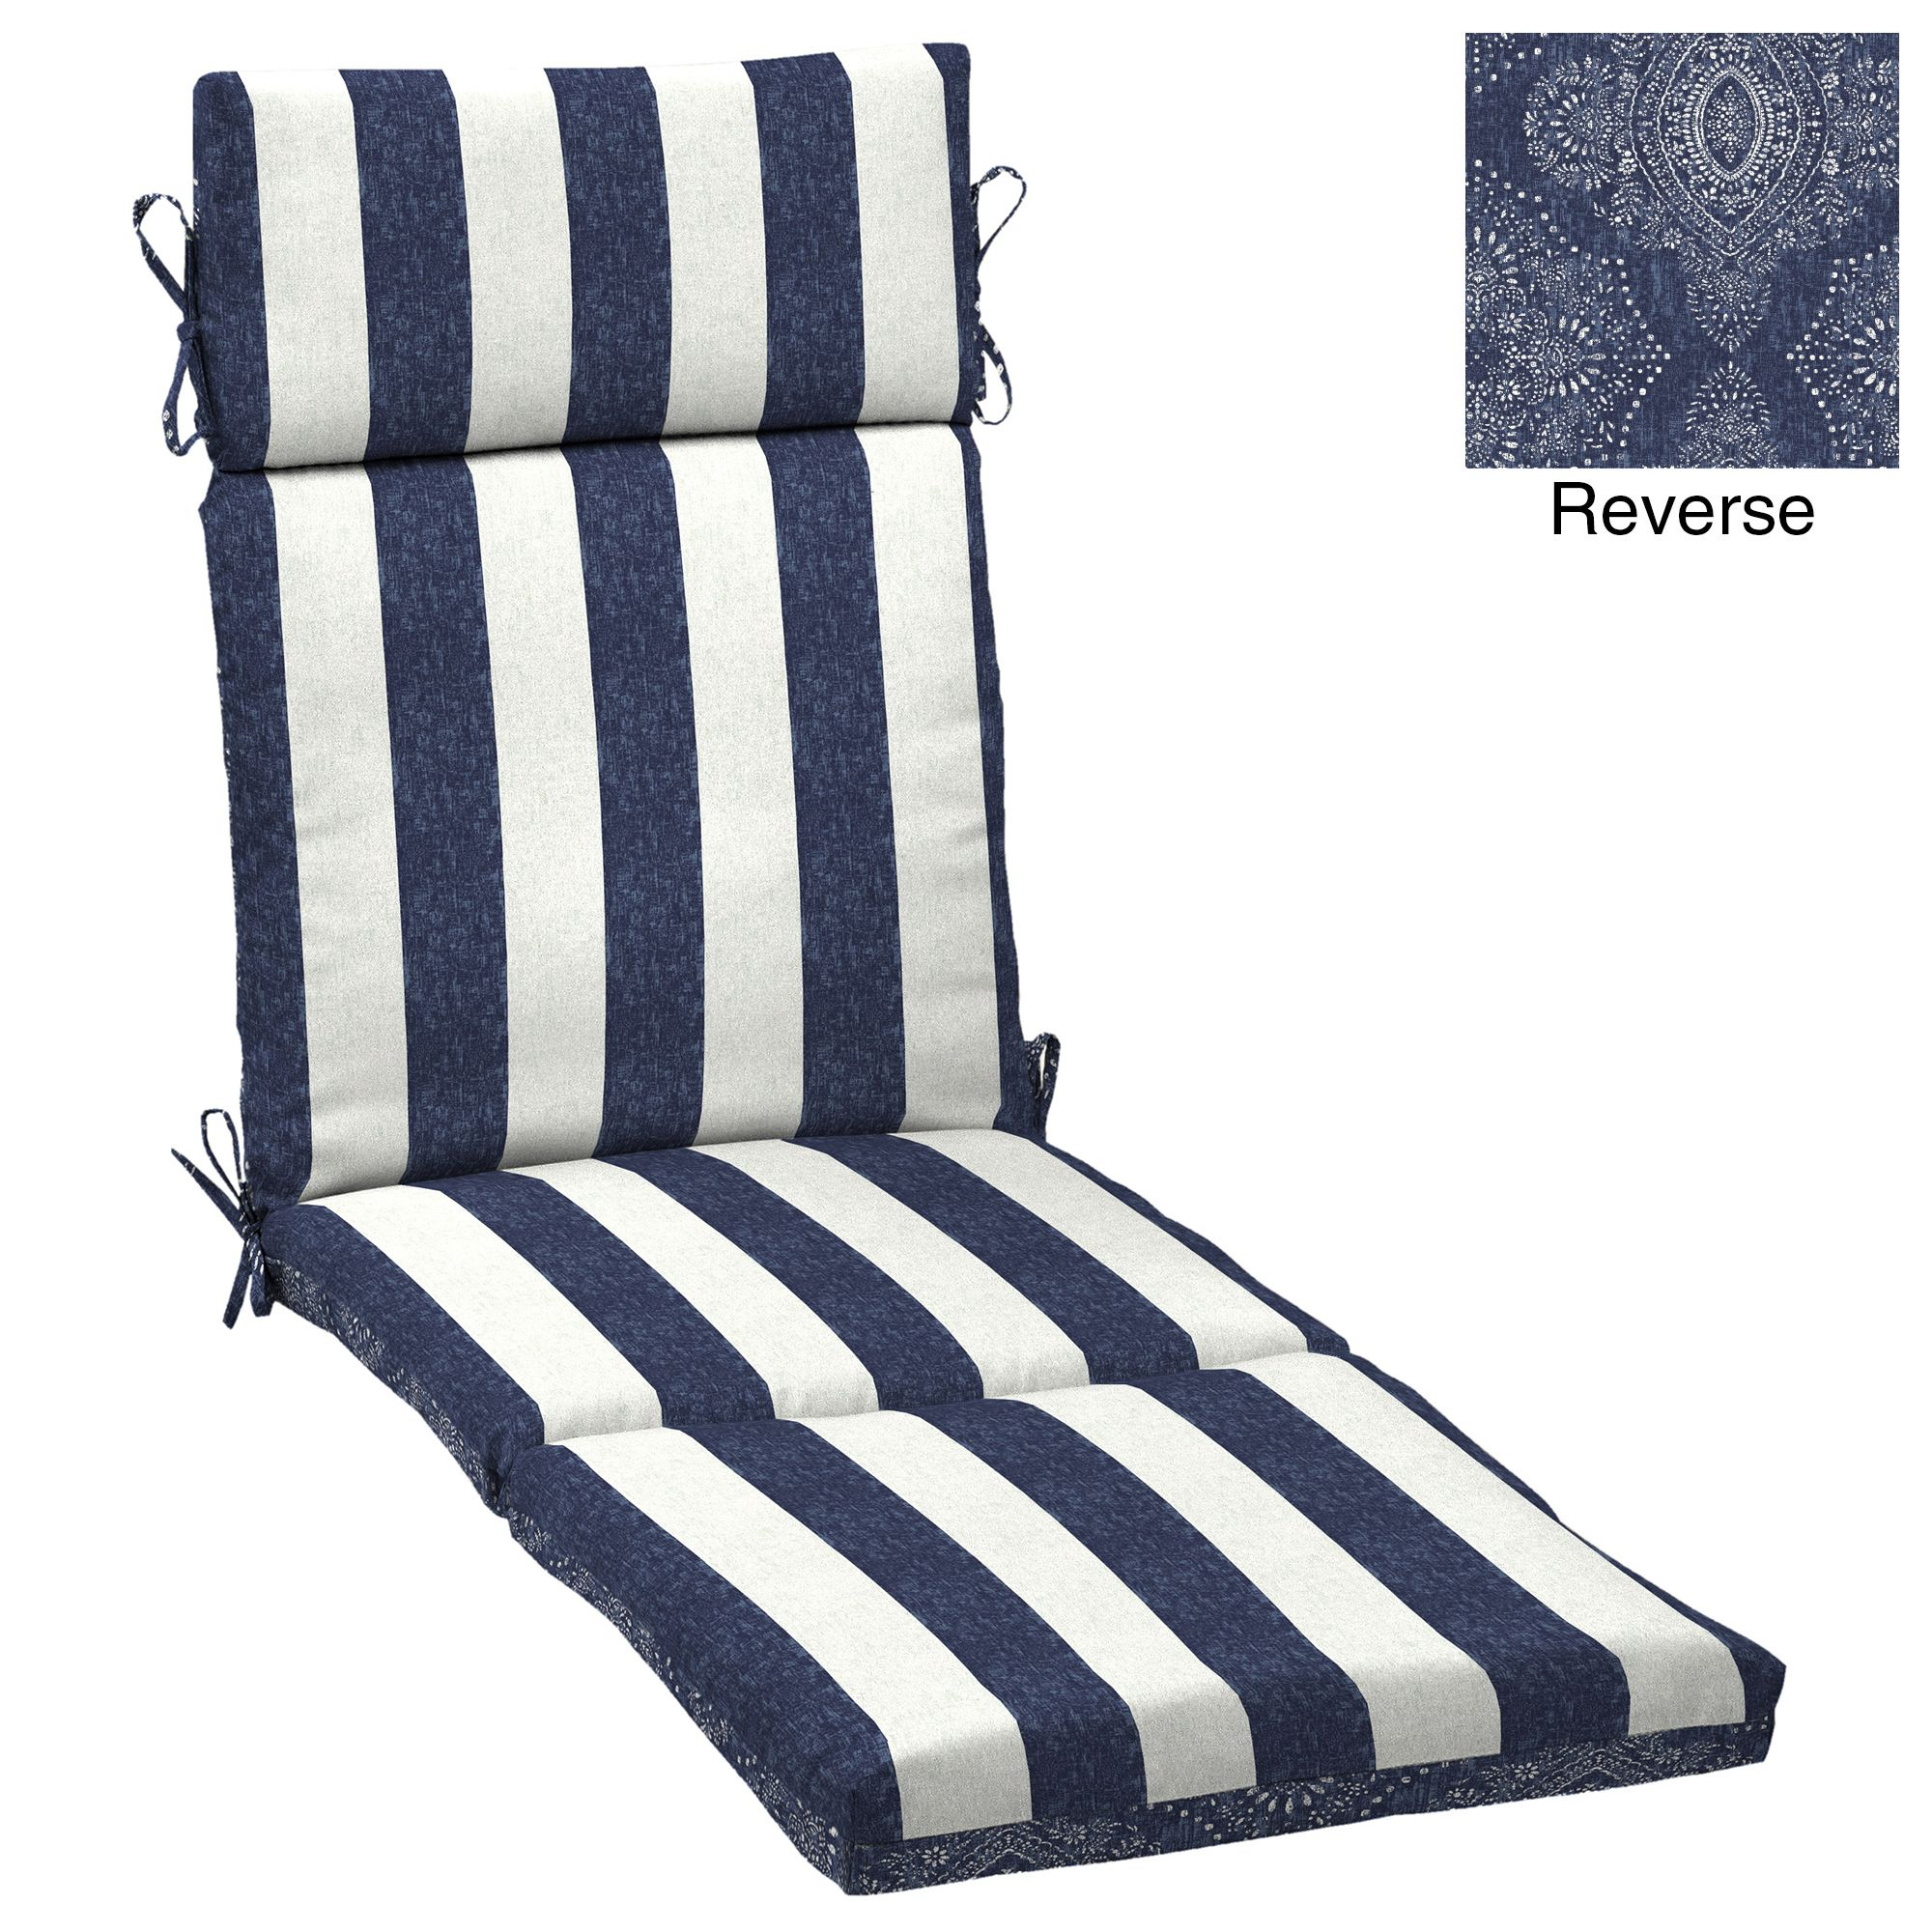 aa8ef151a8a11fd9cf949eeadd1259eb - Better Homes And Gardens Outdoor Patio Chaise Cushion